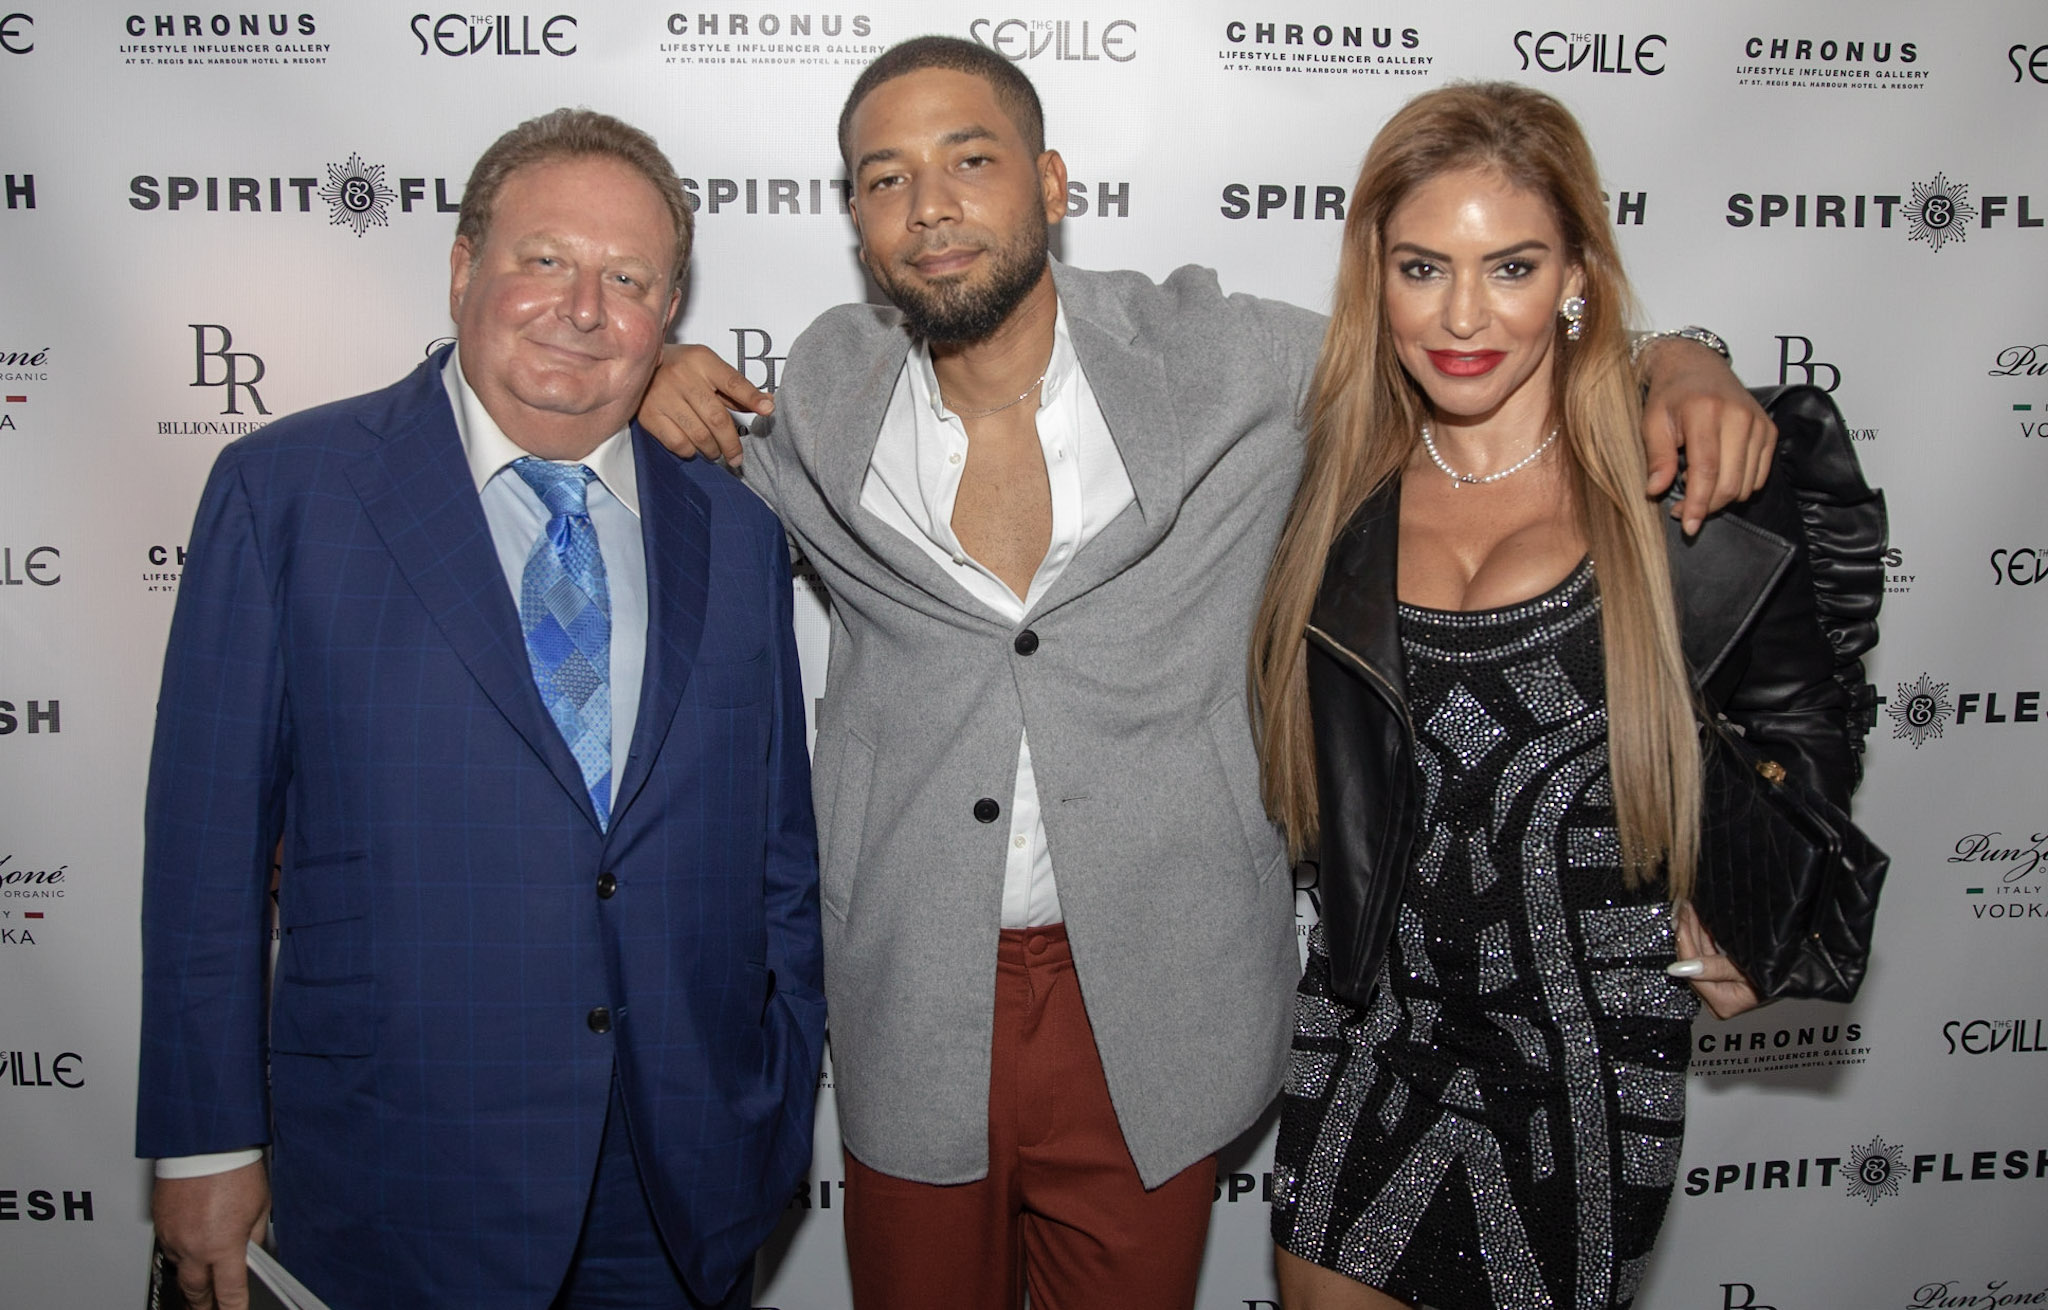 Spirit & Flesh Magazine cover event, Jussie Smollett with David & Rosa Veitsman by Kenneth de la Torre